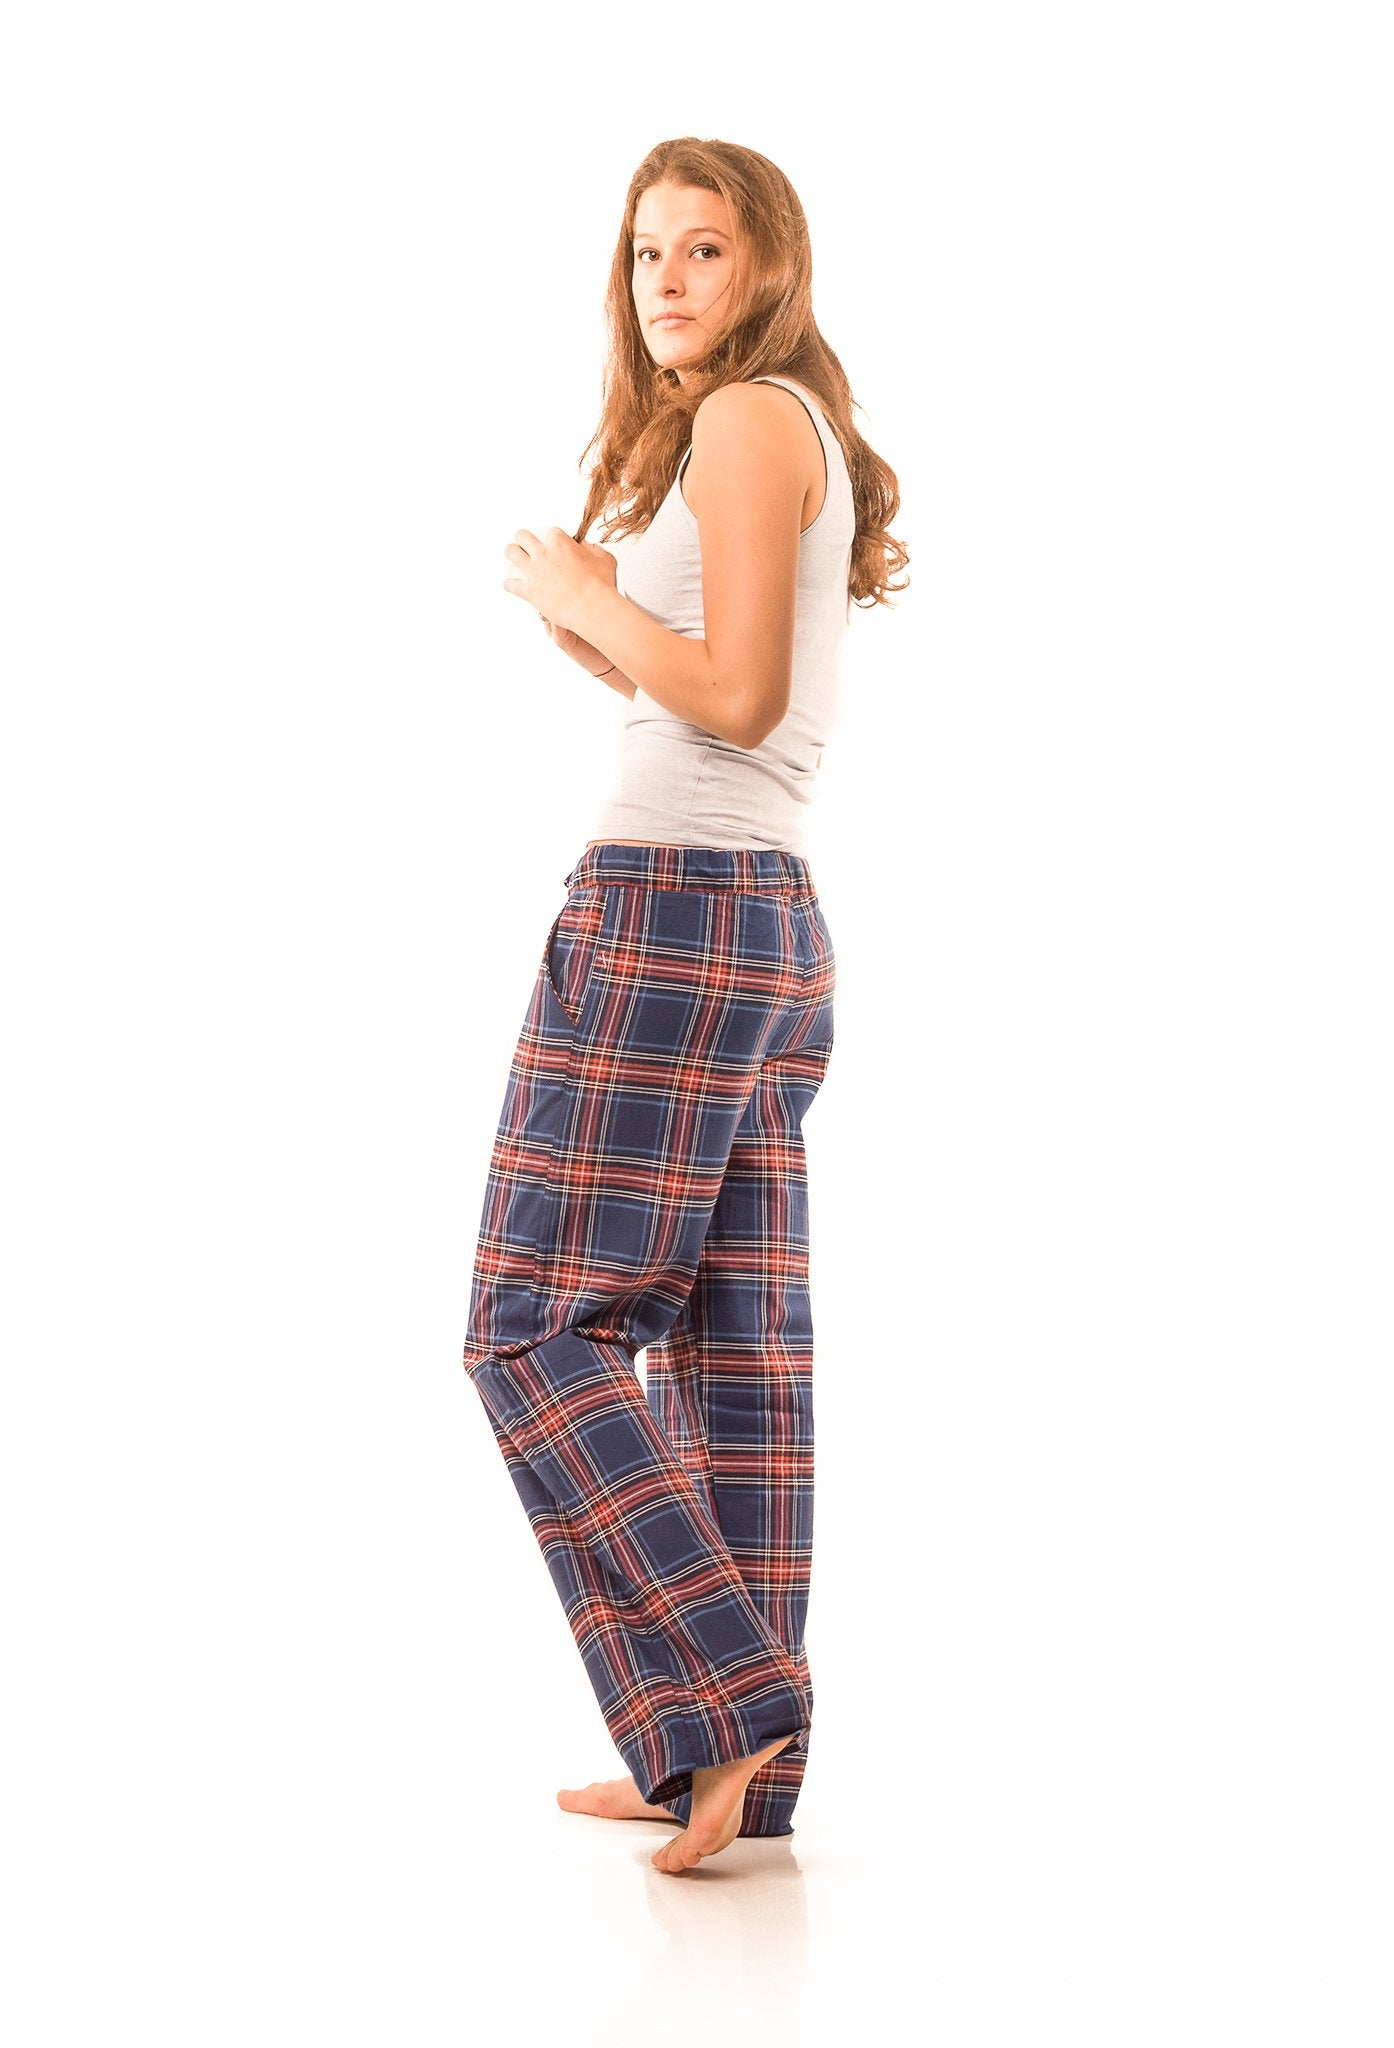 Frensham Blue/red check lounge pants - Women's